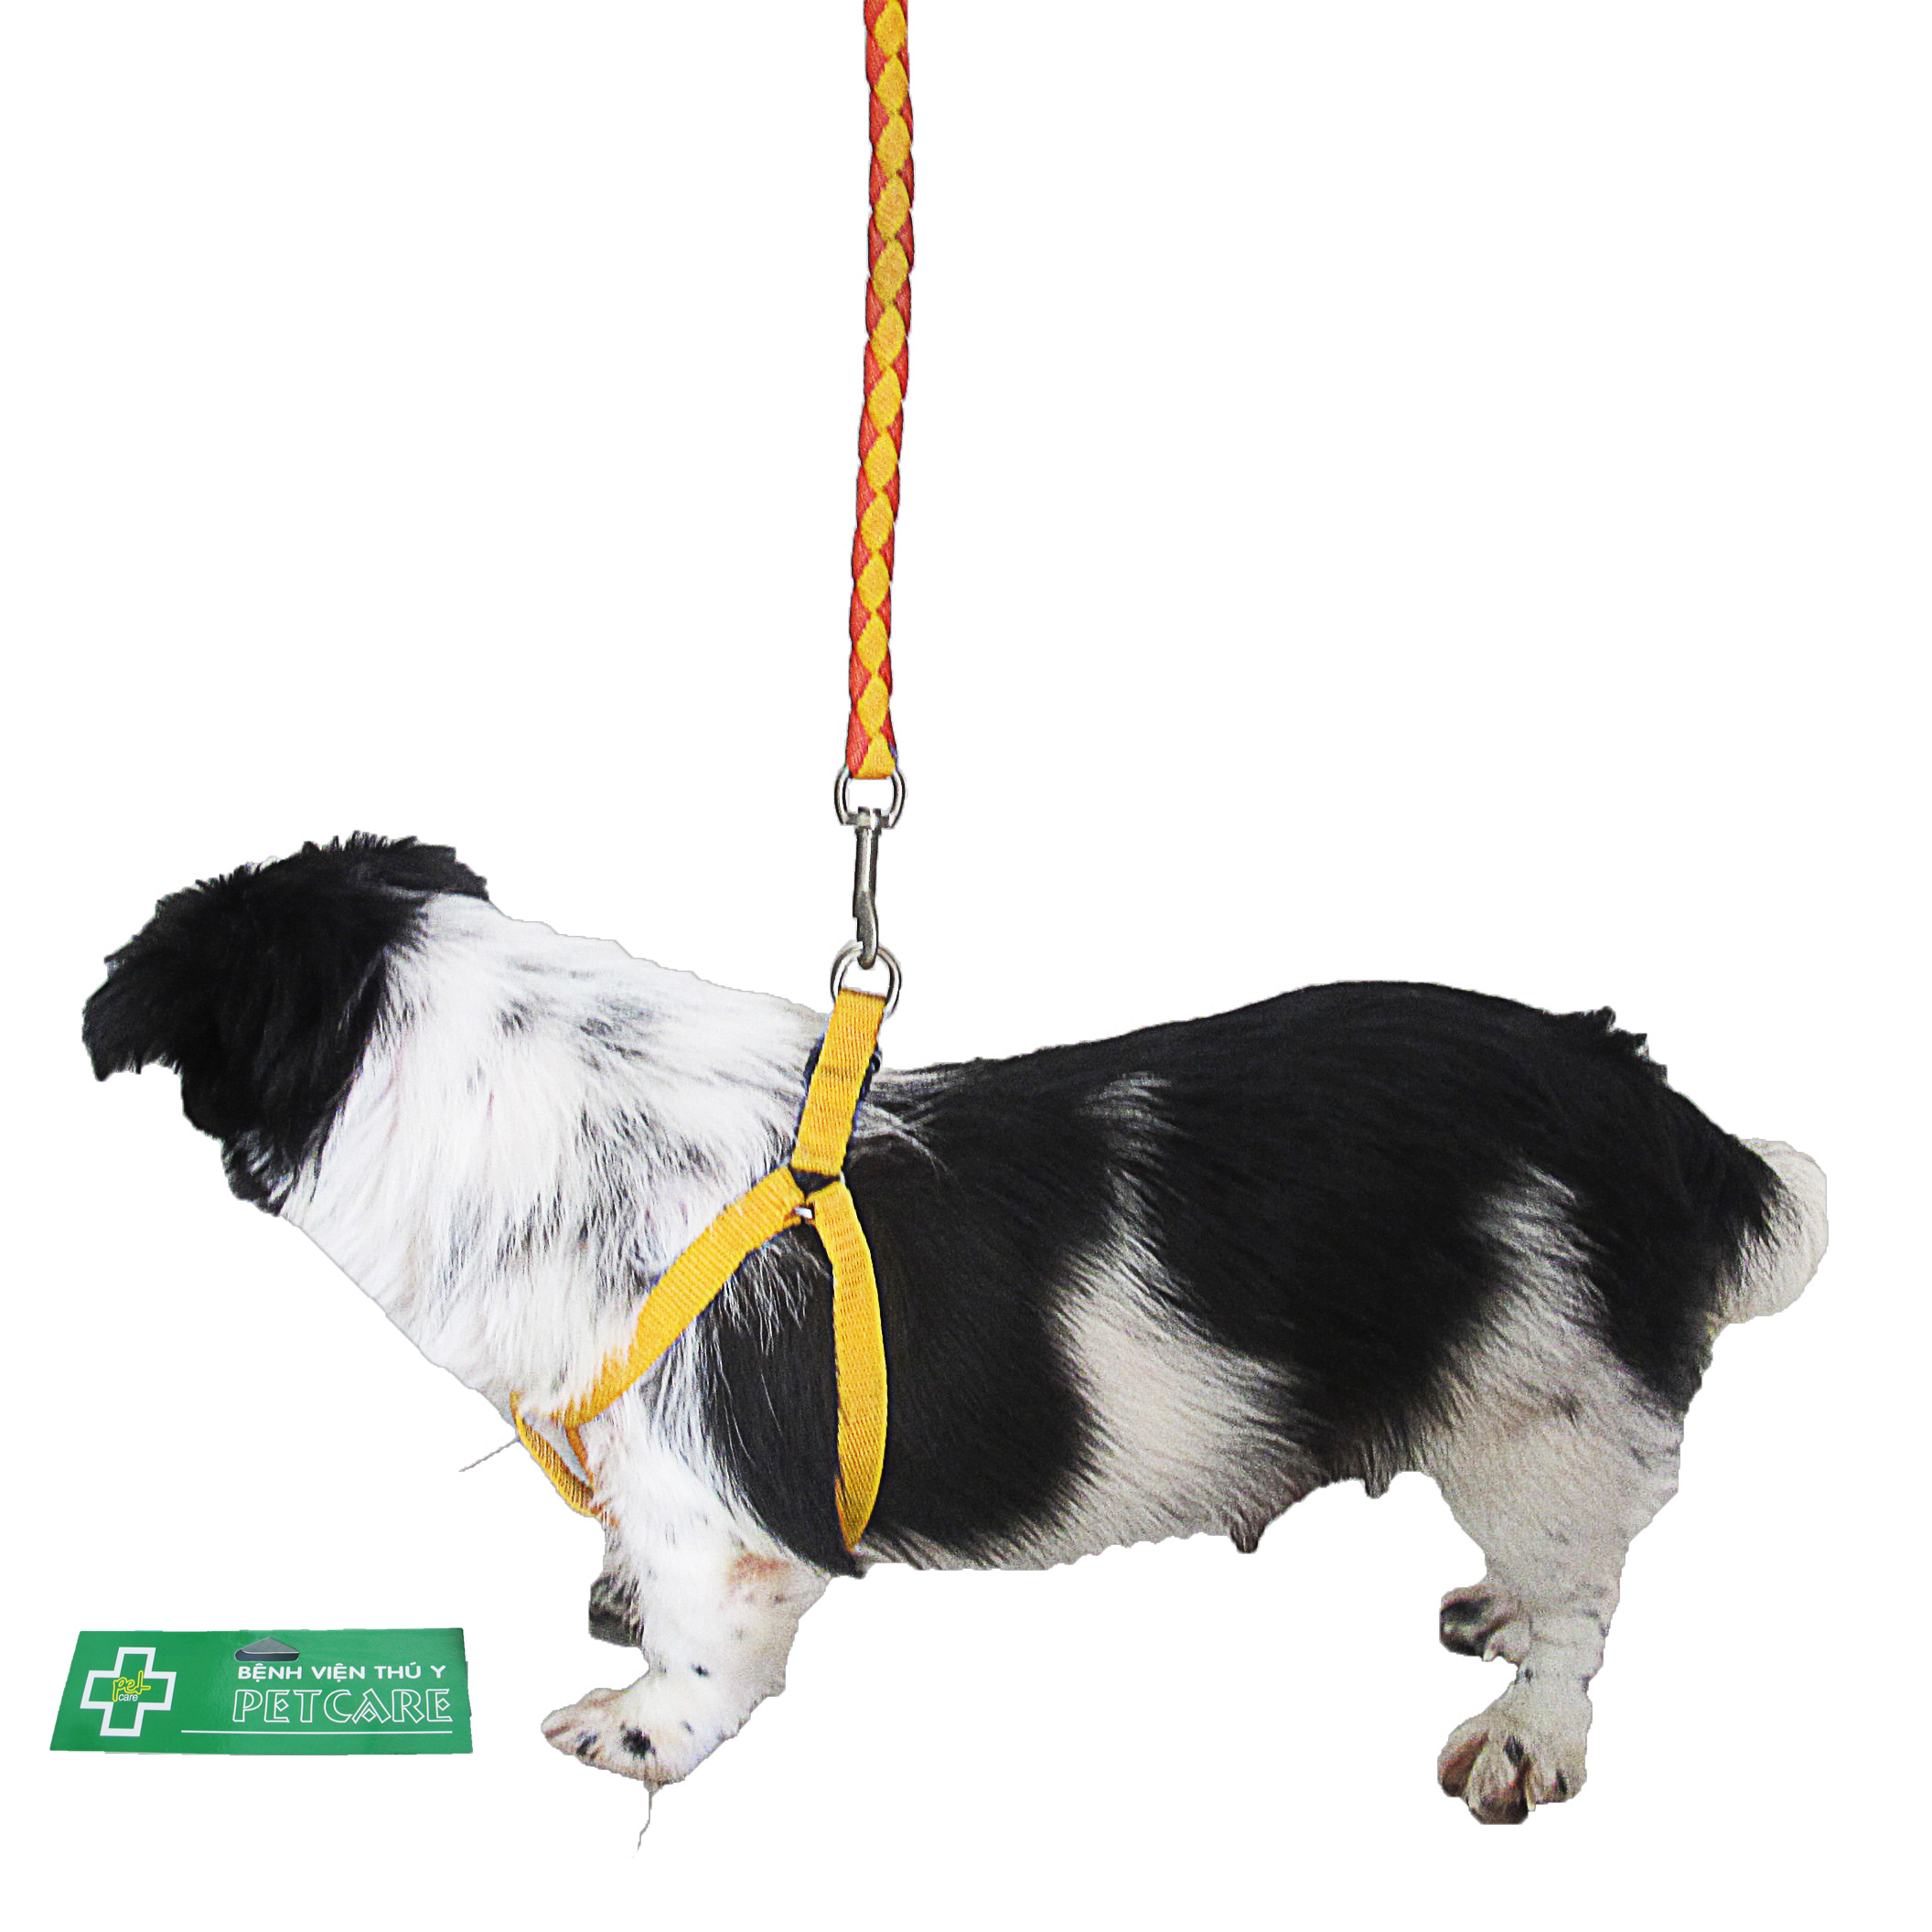 (H) Checked orange and yellow harness